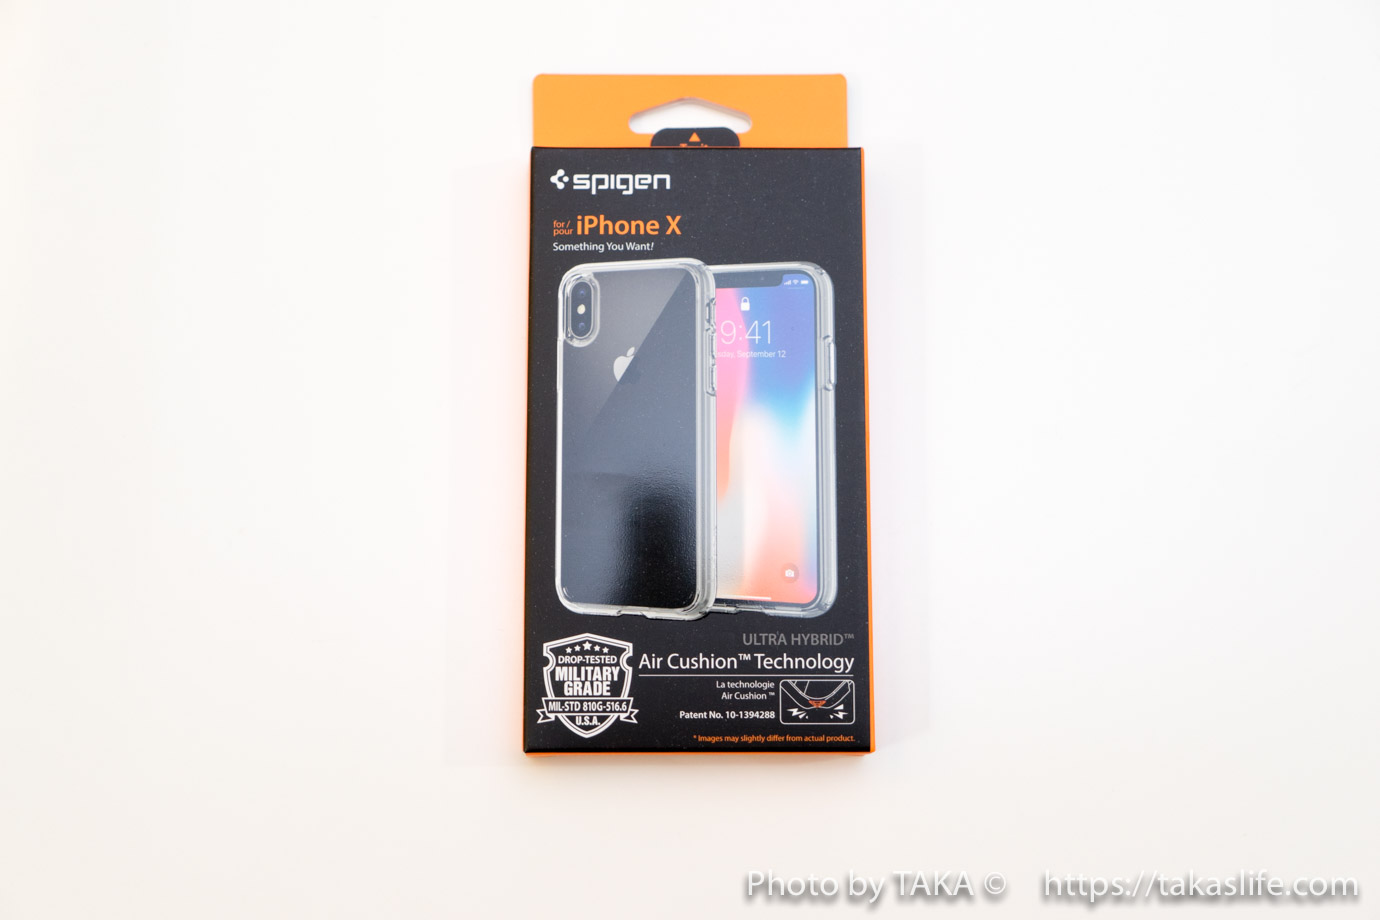 Spigen iPhone X ケース 03 20171113 215622